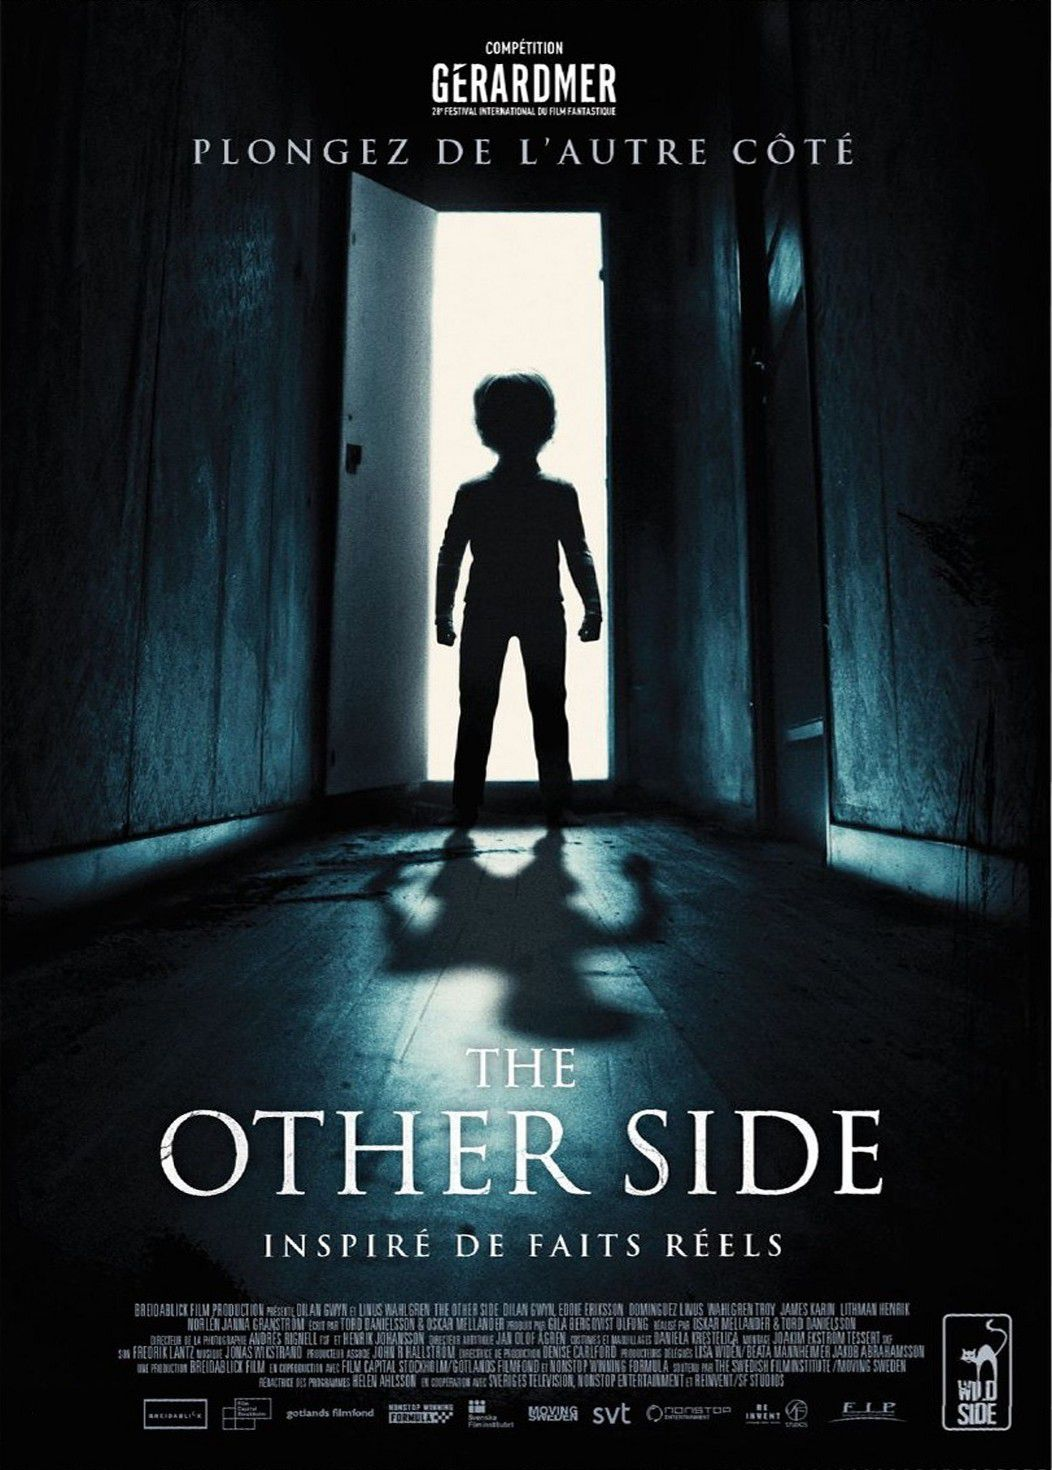 Voir Film The Other Side - Film (2020) streaming VF gratuit complet